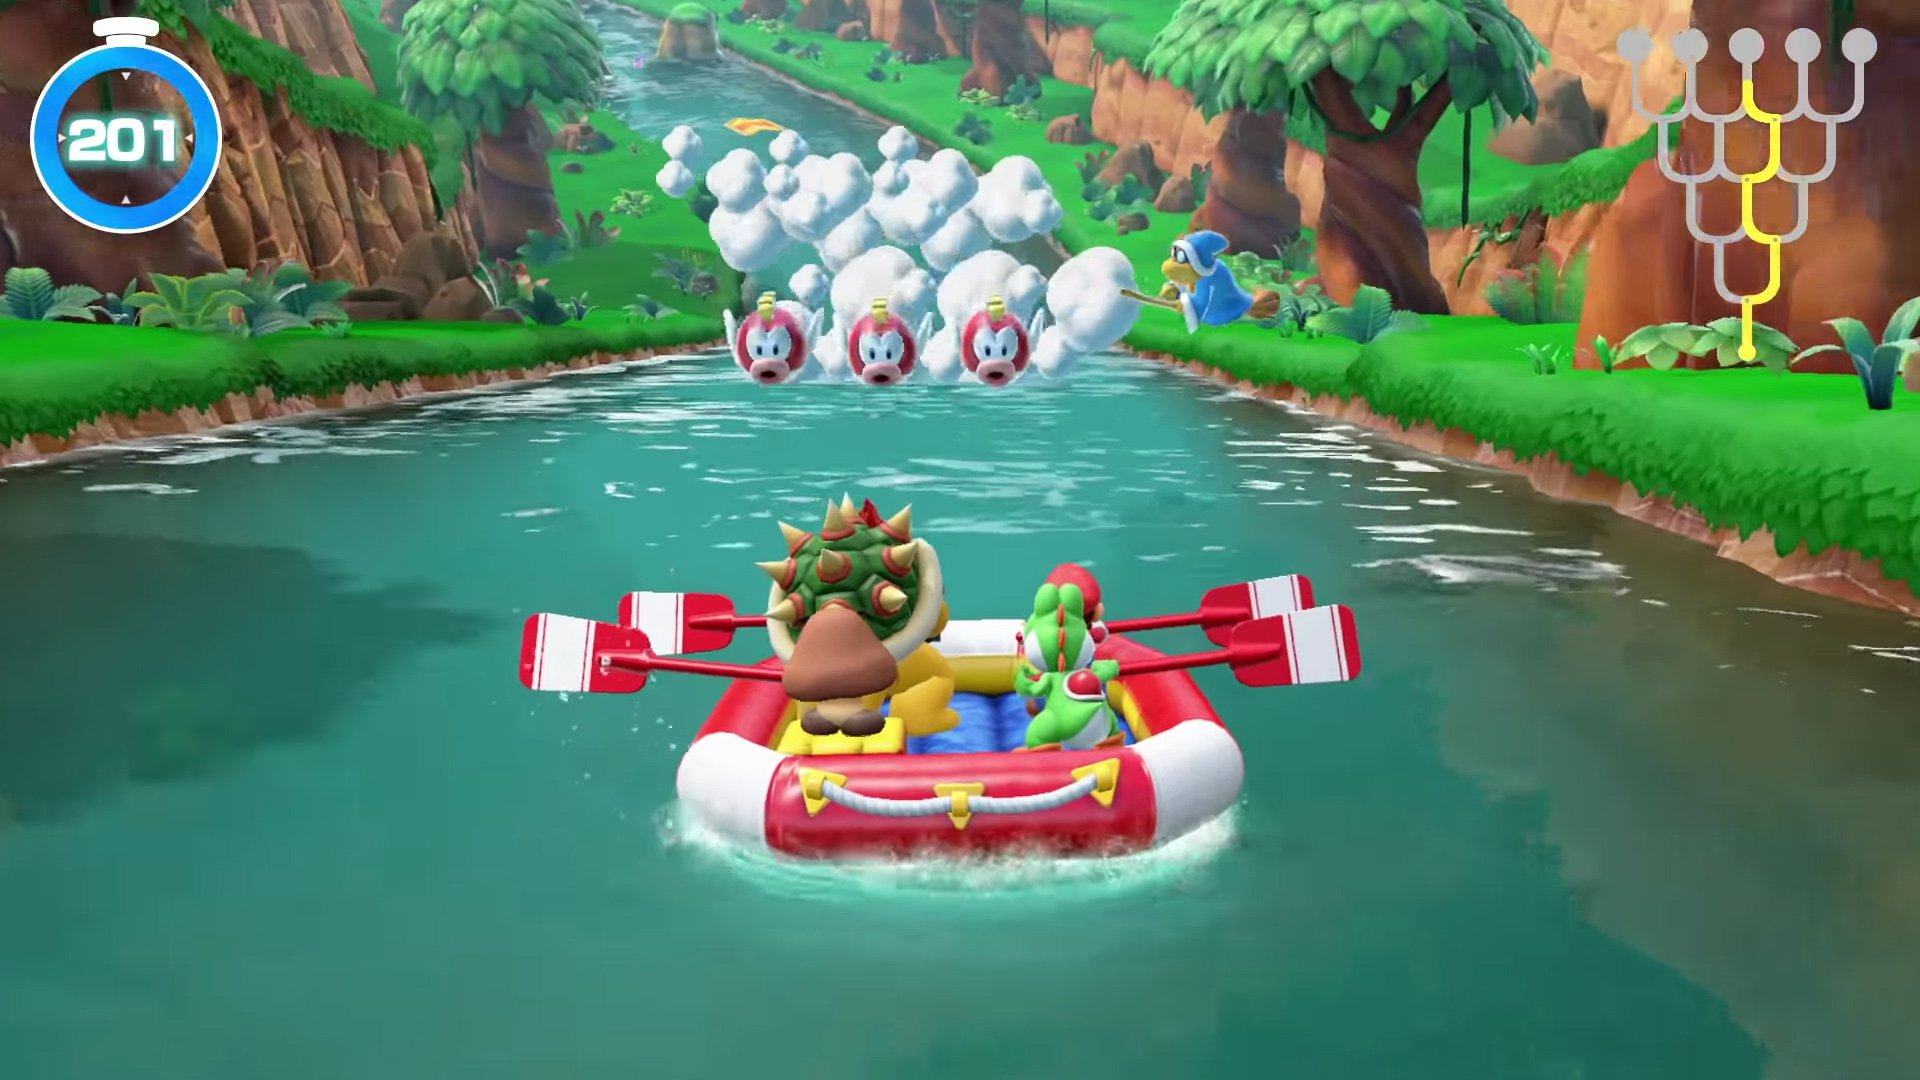 Image result for Super Mario Party 1920x1080